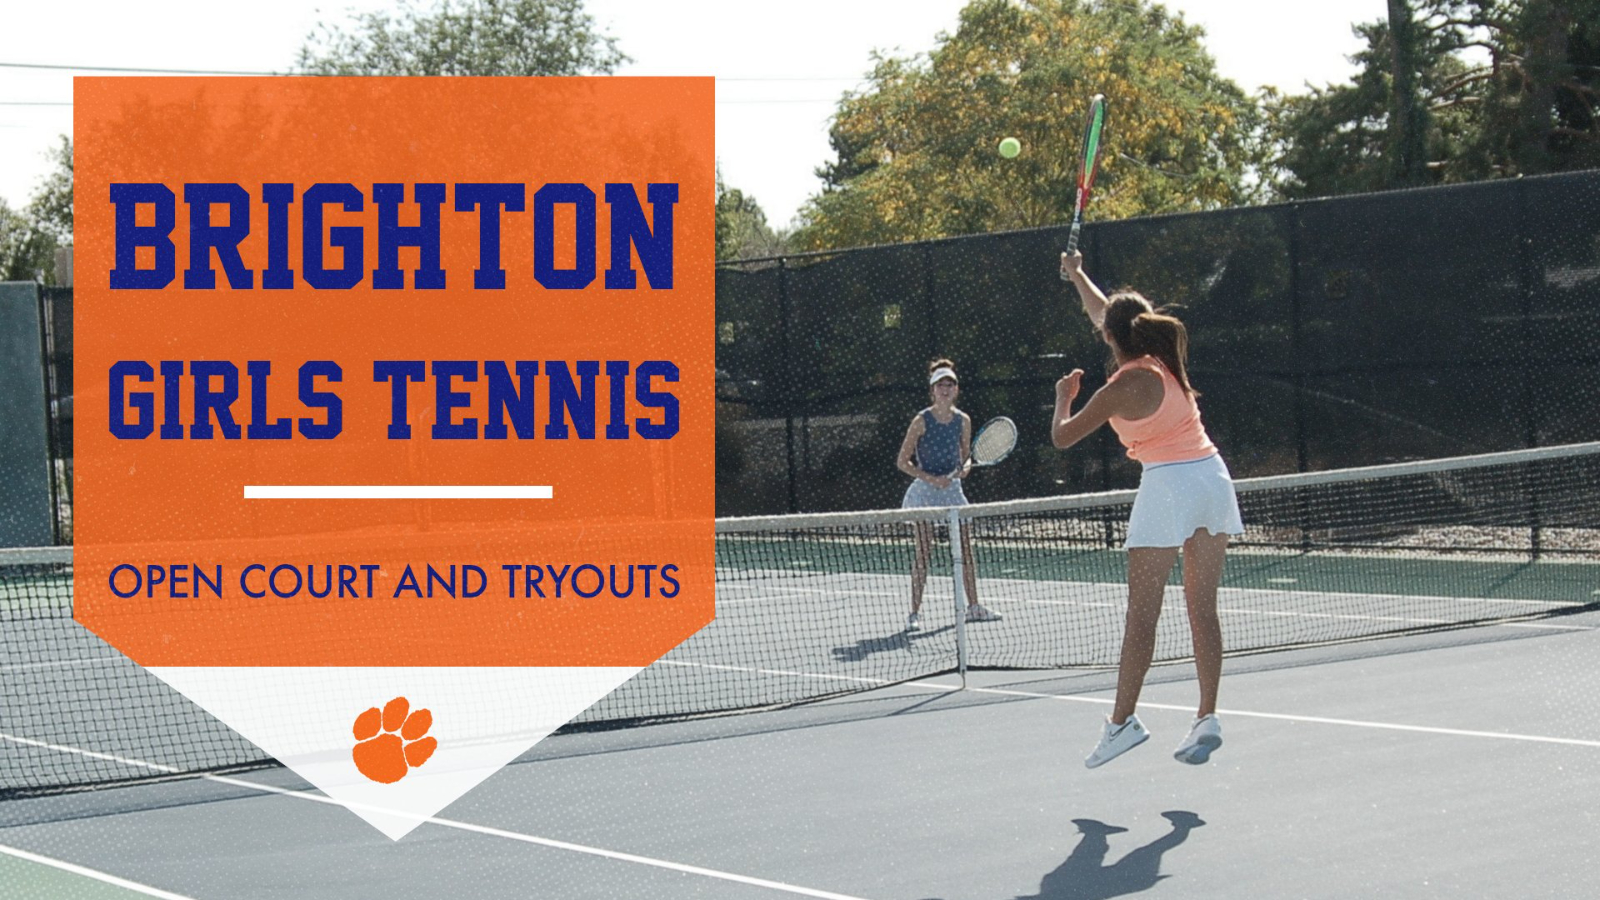 Girls Tennis Open Court and Tryouts